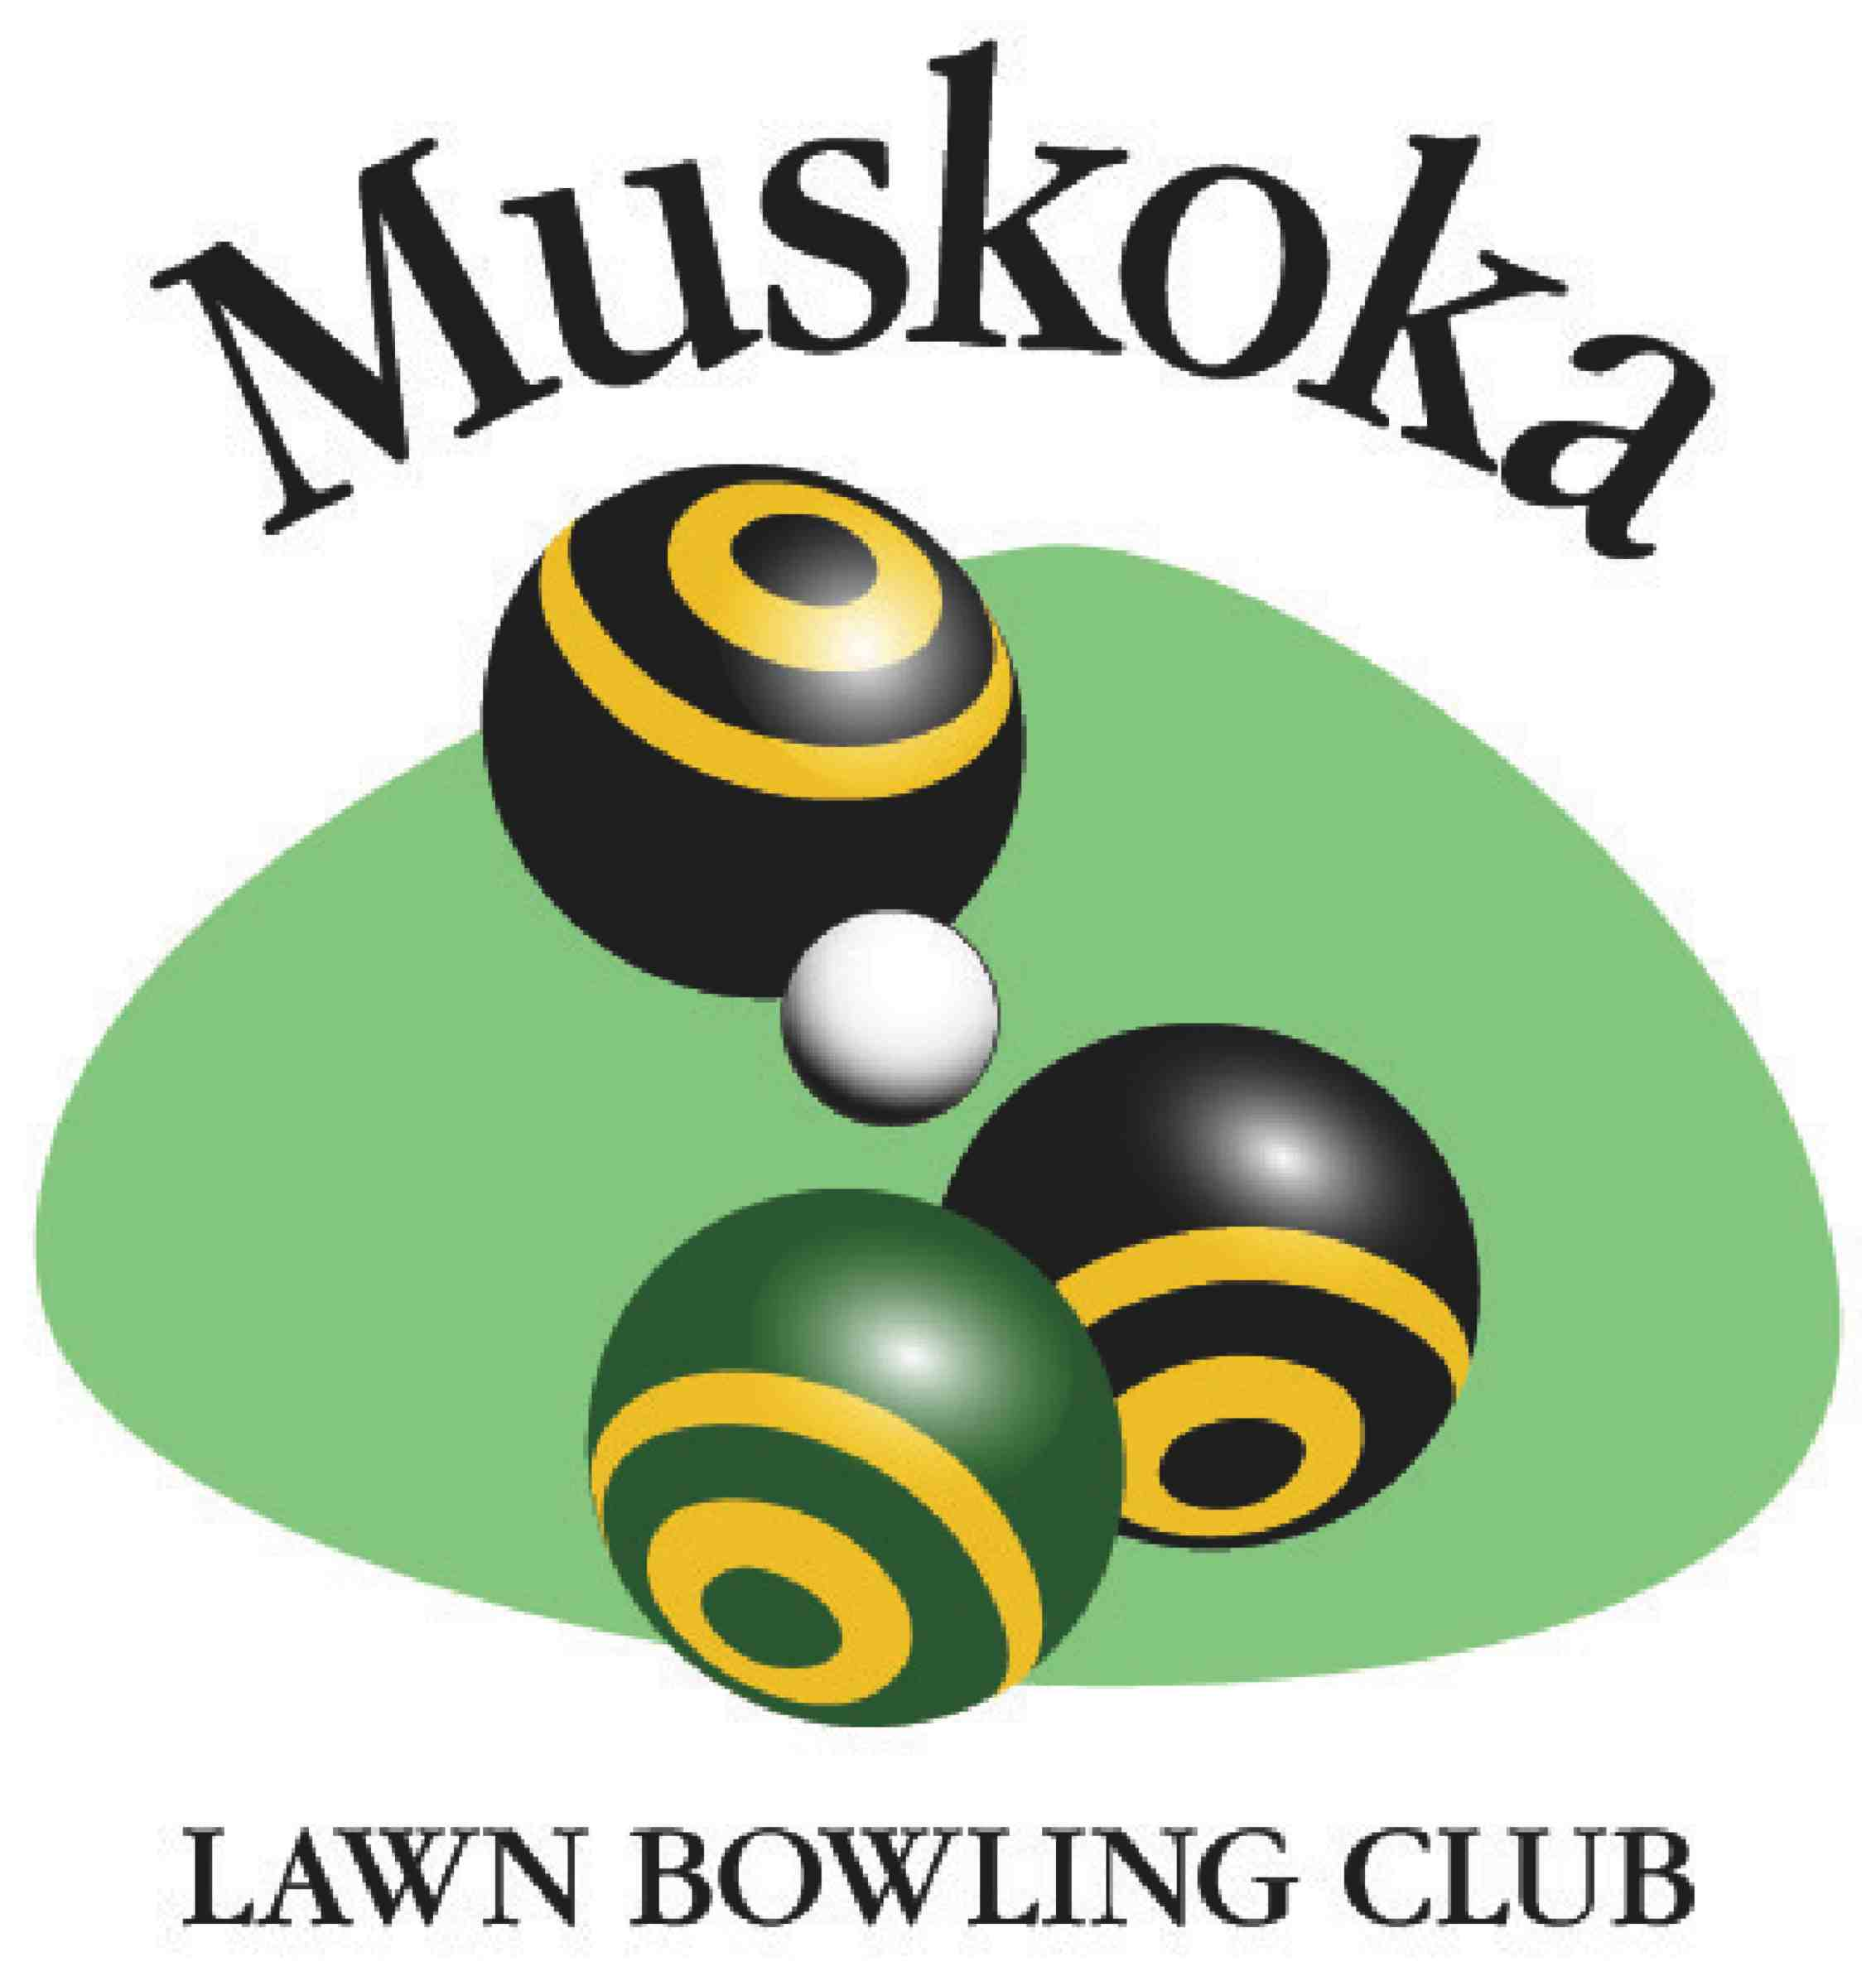 lawn bowls instruction videos